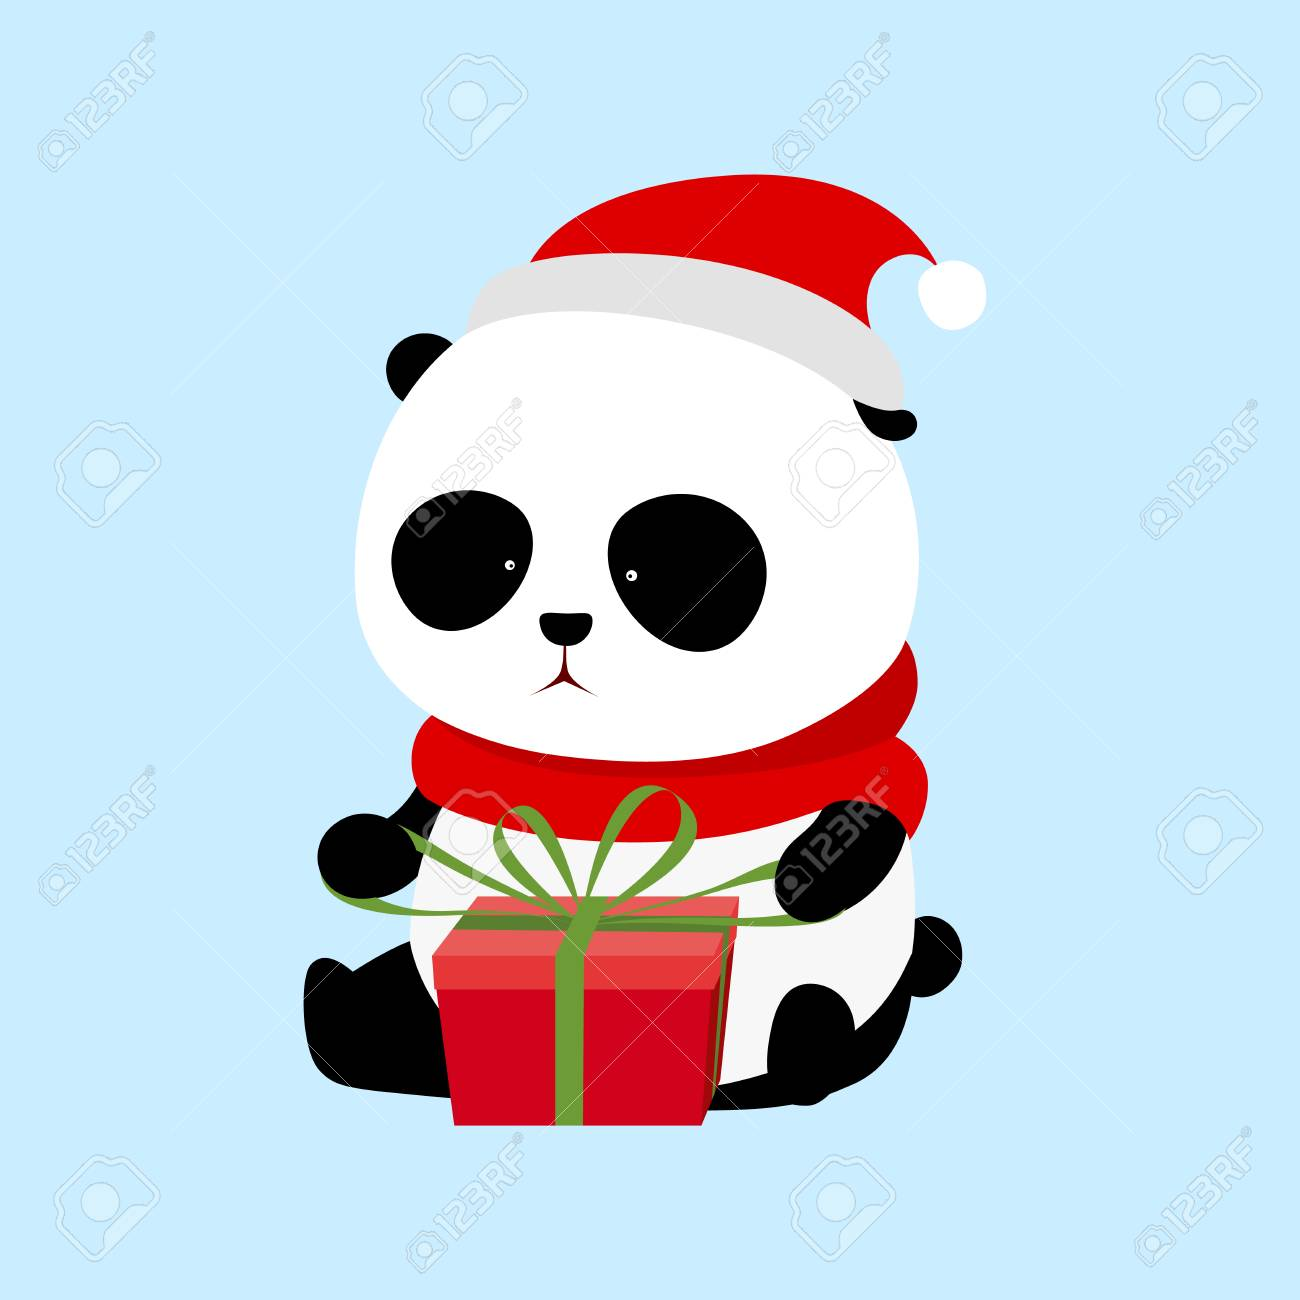 Christmas Hat Cartoon.A Cute Cartoon Giant Panda With Red Scarf And Red Christmas Hat